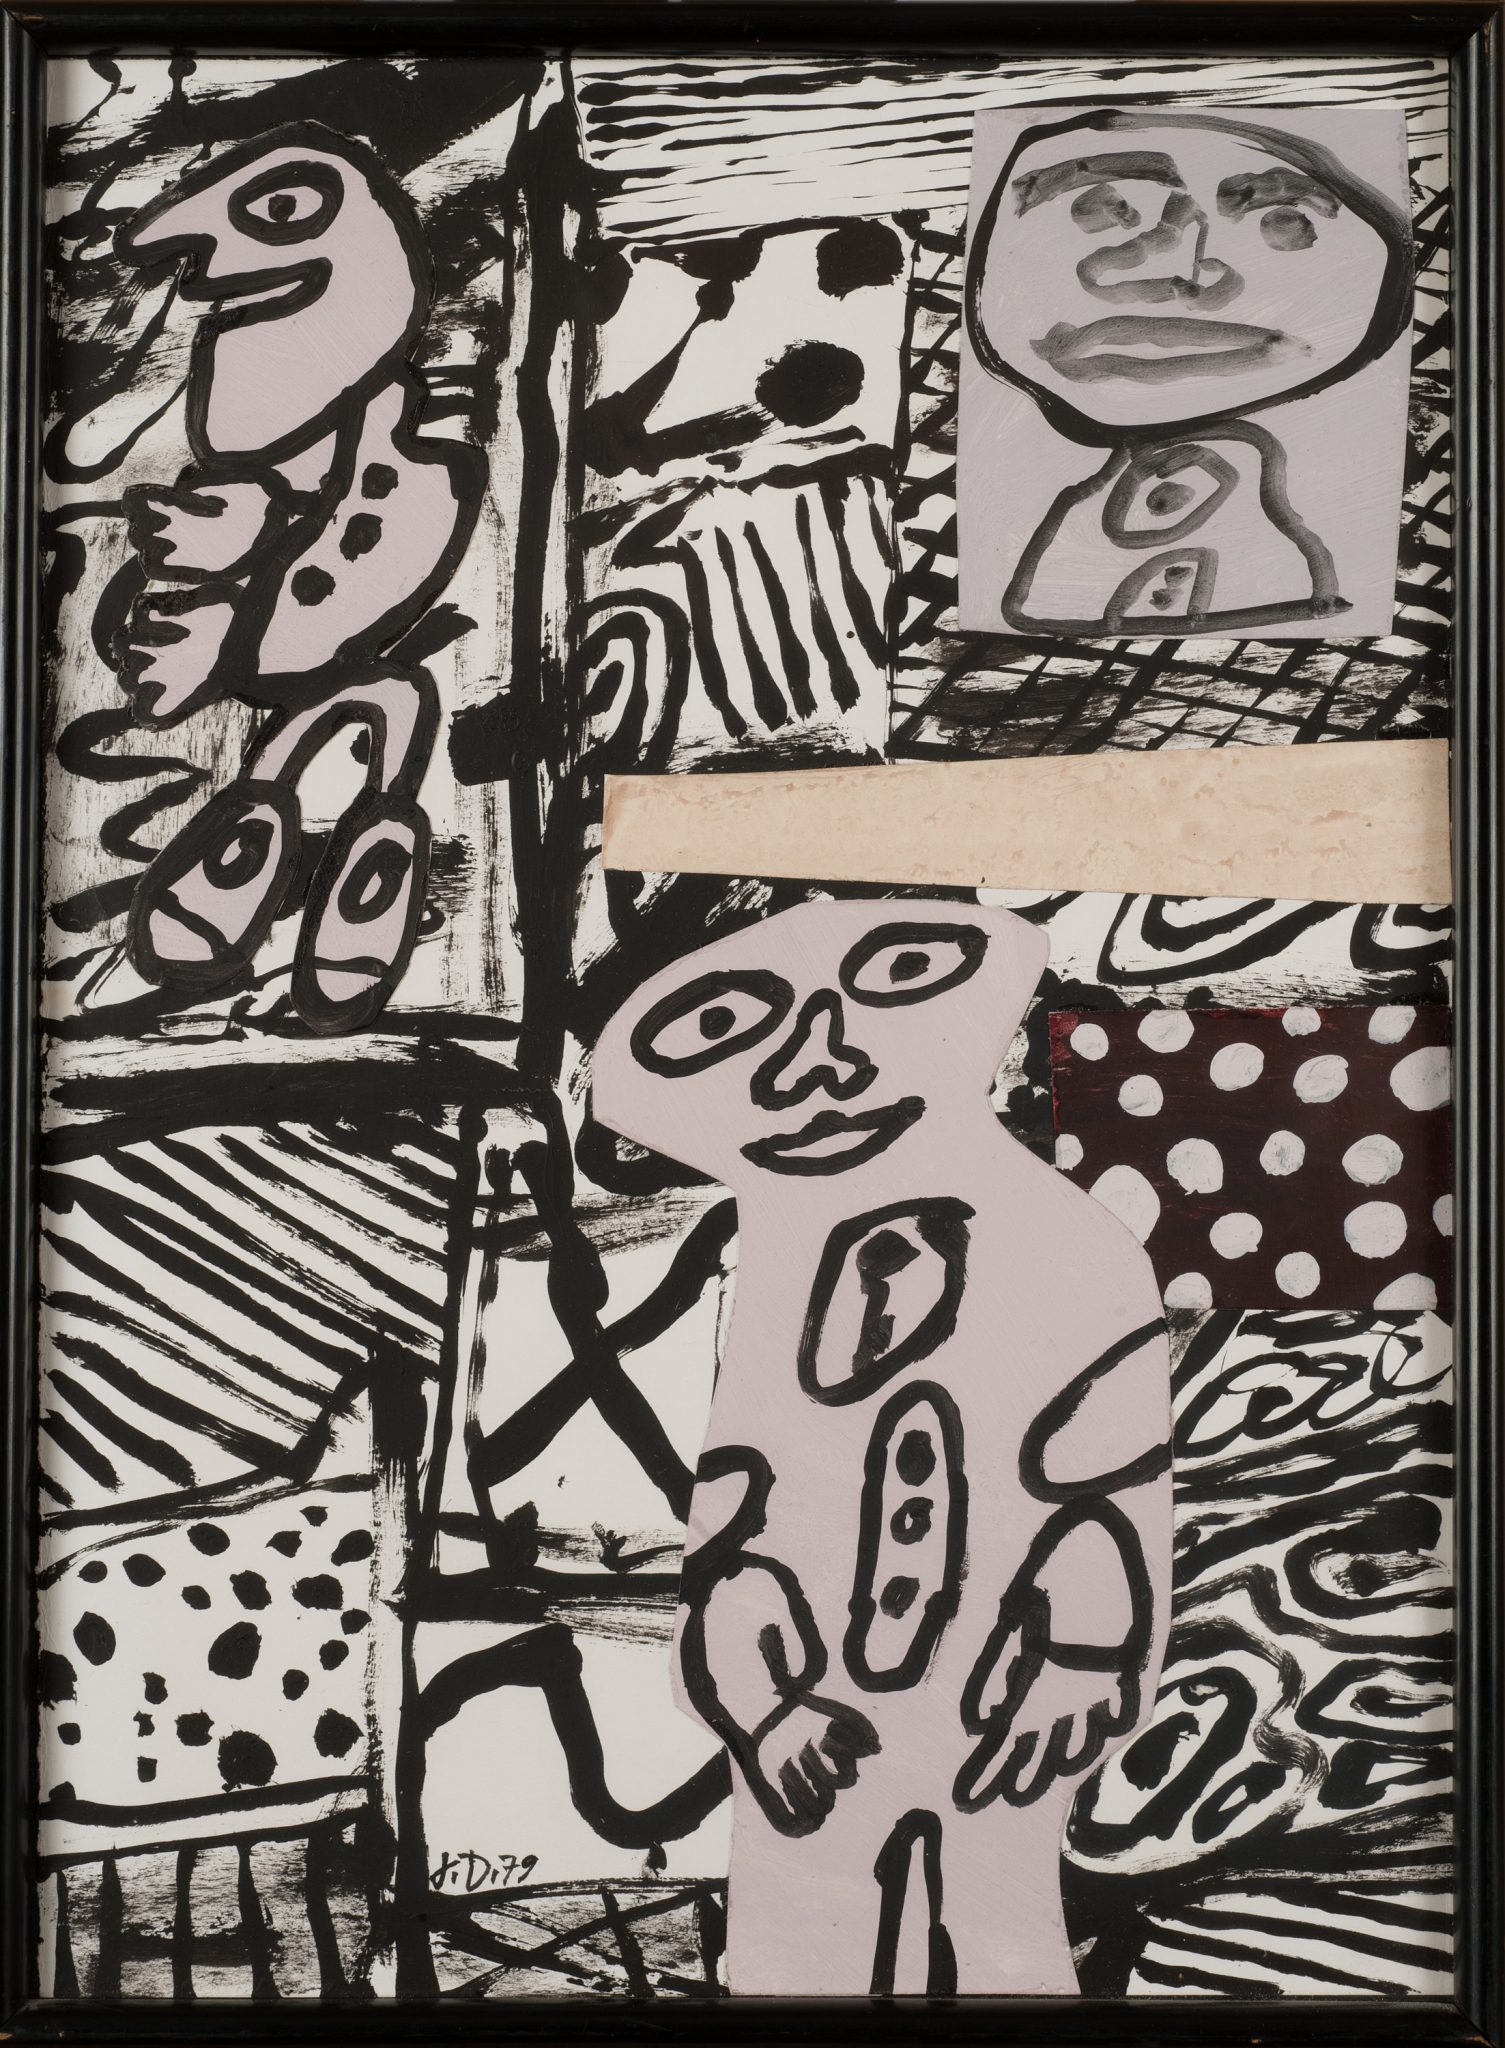 Jean Dubuffet Séquence XVIII, April 2, 1979 acrylic on paper (5 sections) FAD magazine